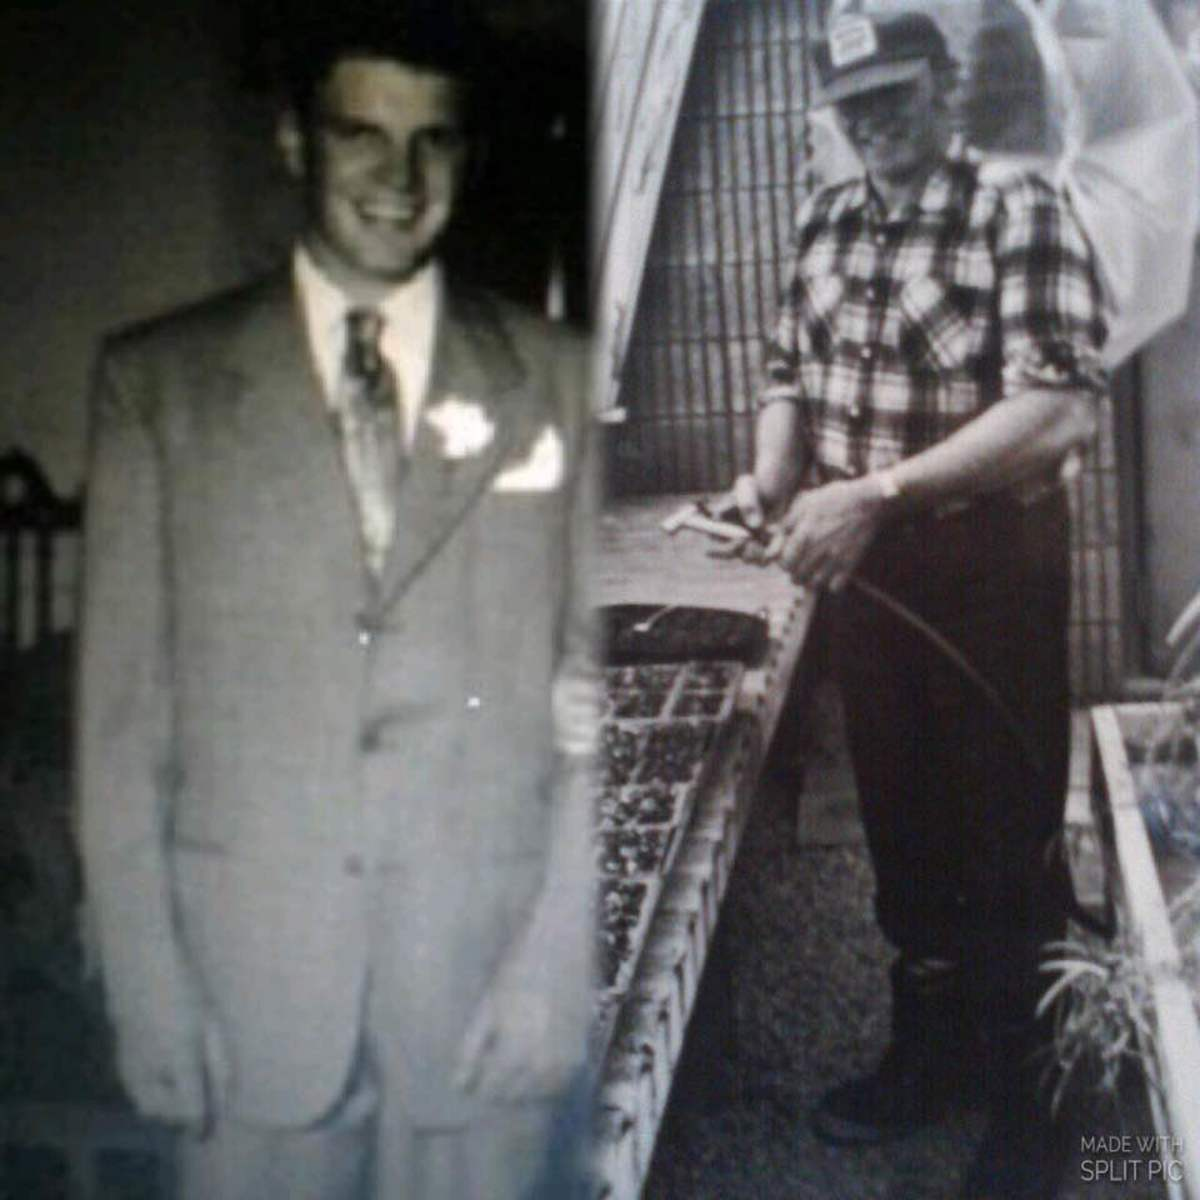 My father, Carl Mills, as a young man and not long before he passed away at age 59.